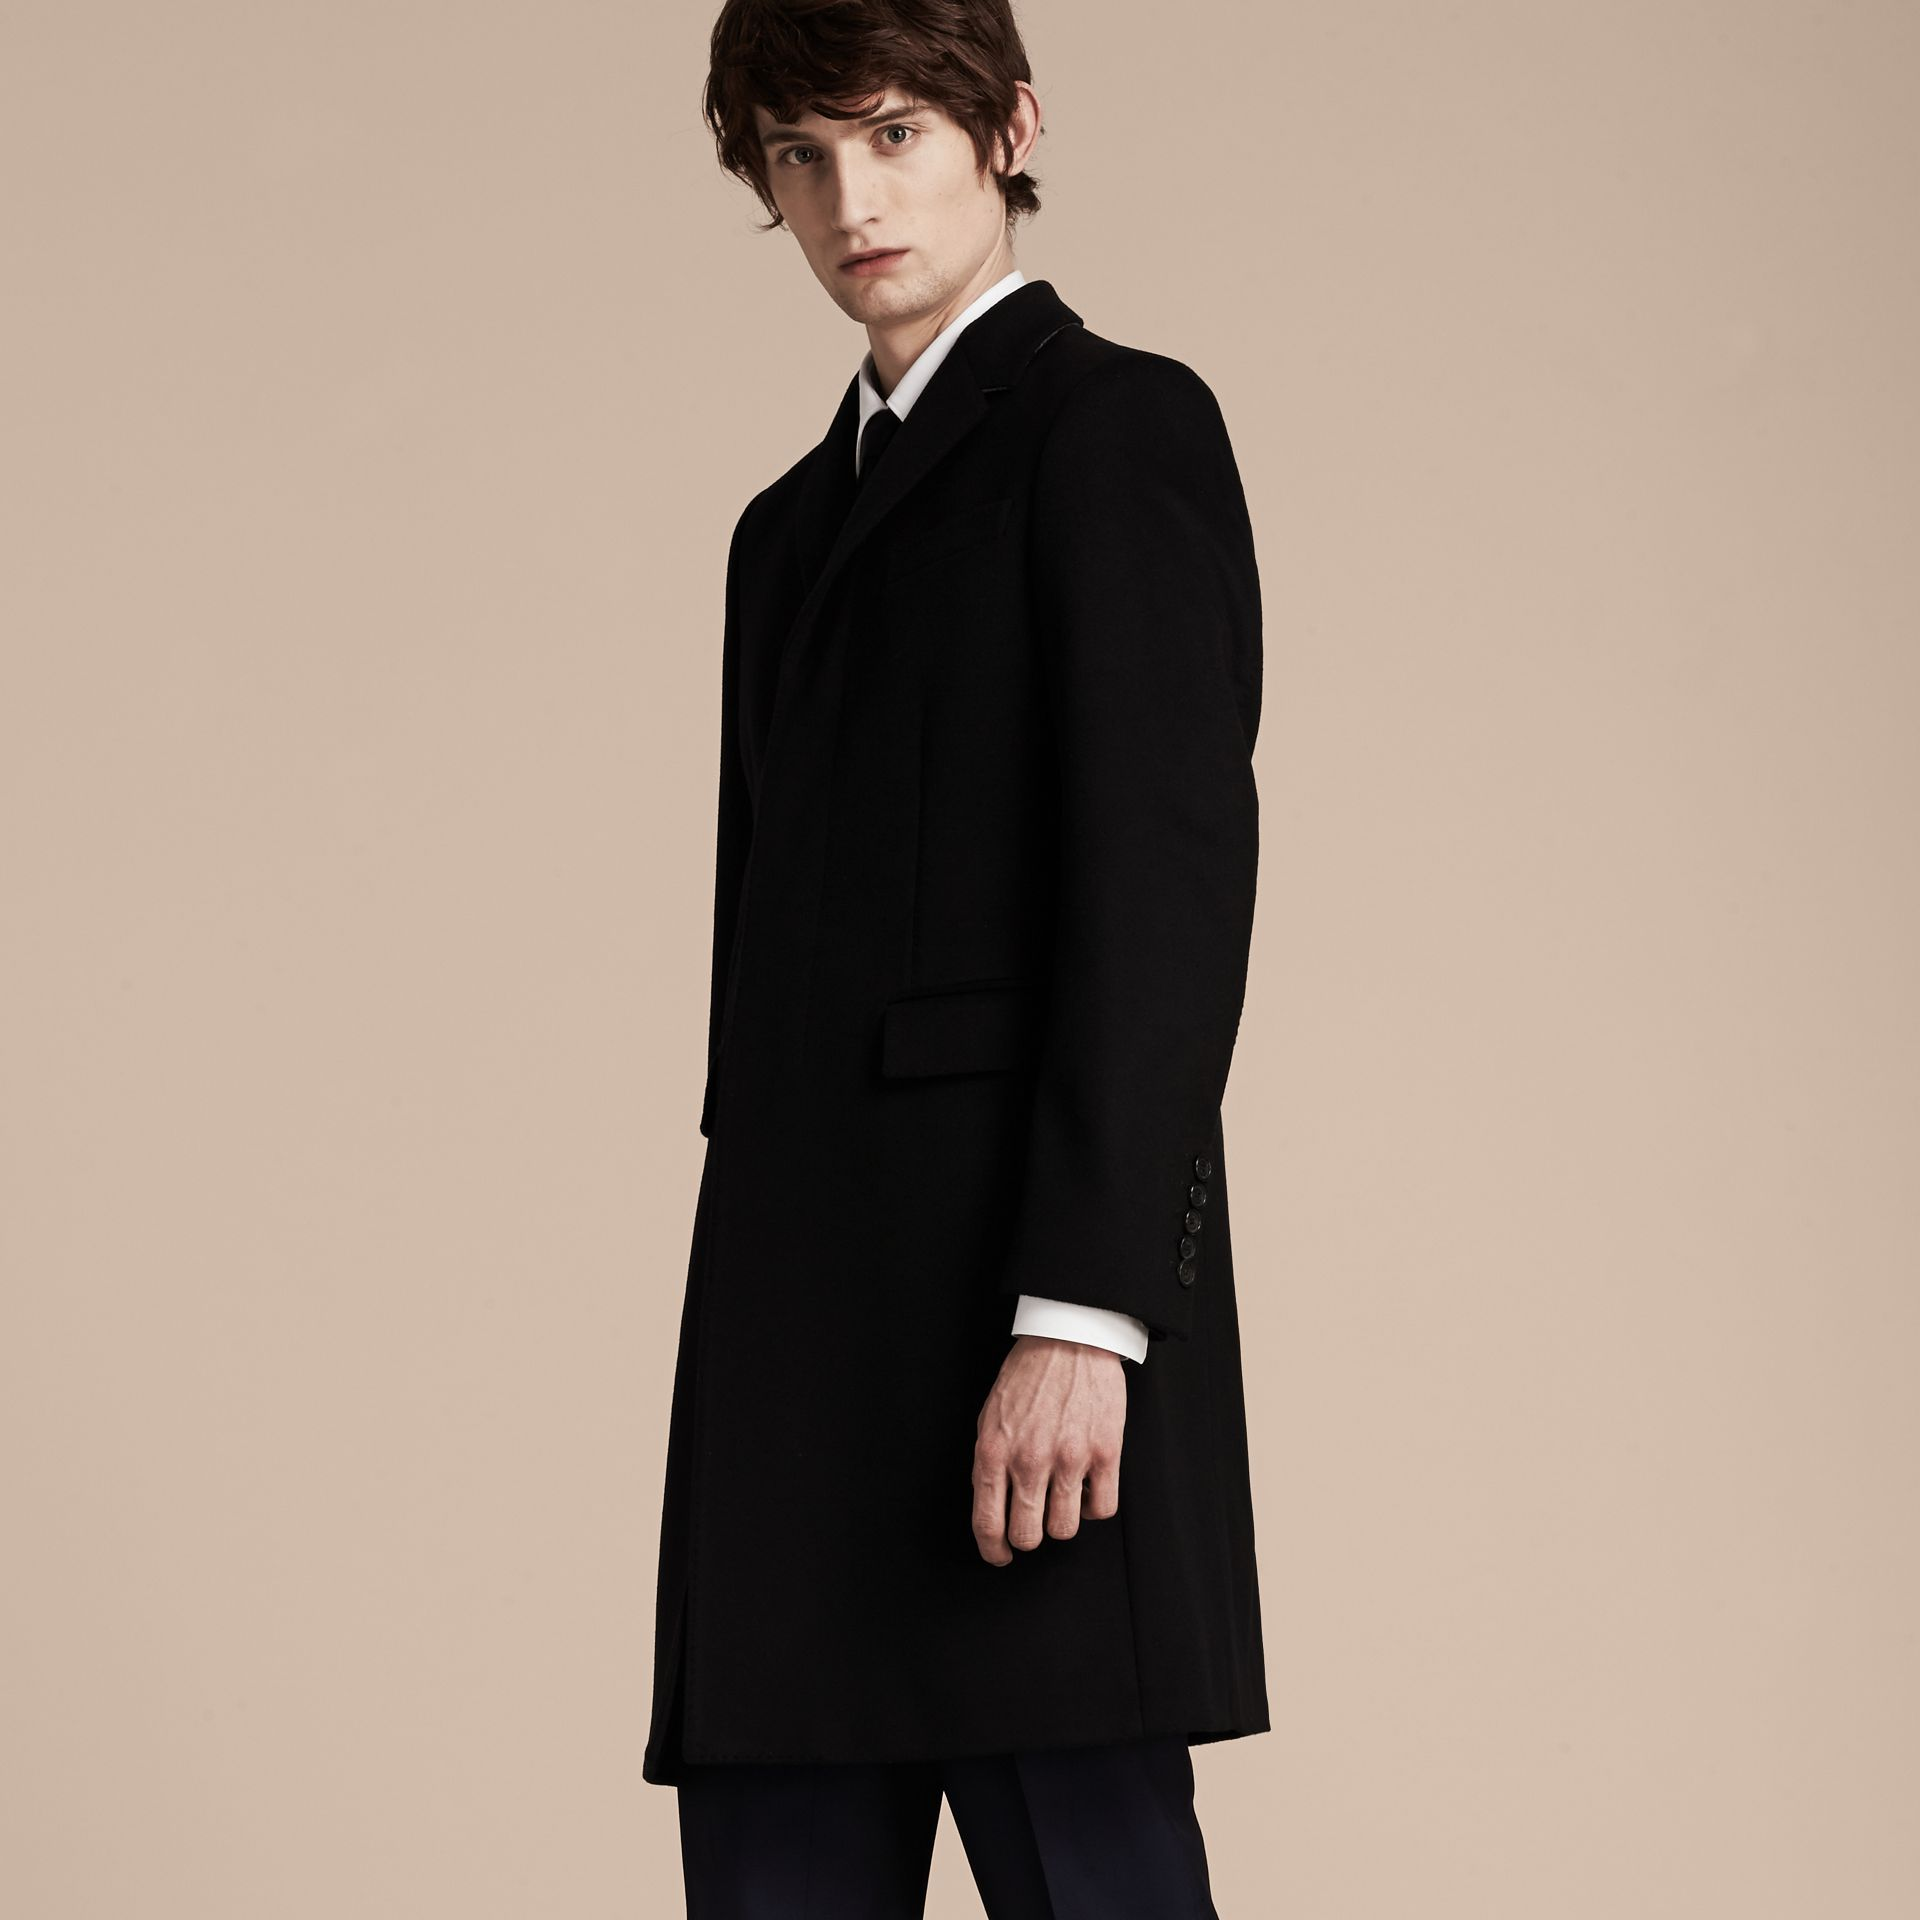 Black Wool Cashmere Tailored Coat Black - gallery image 7